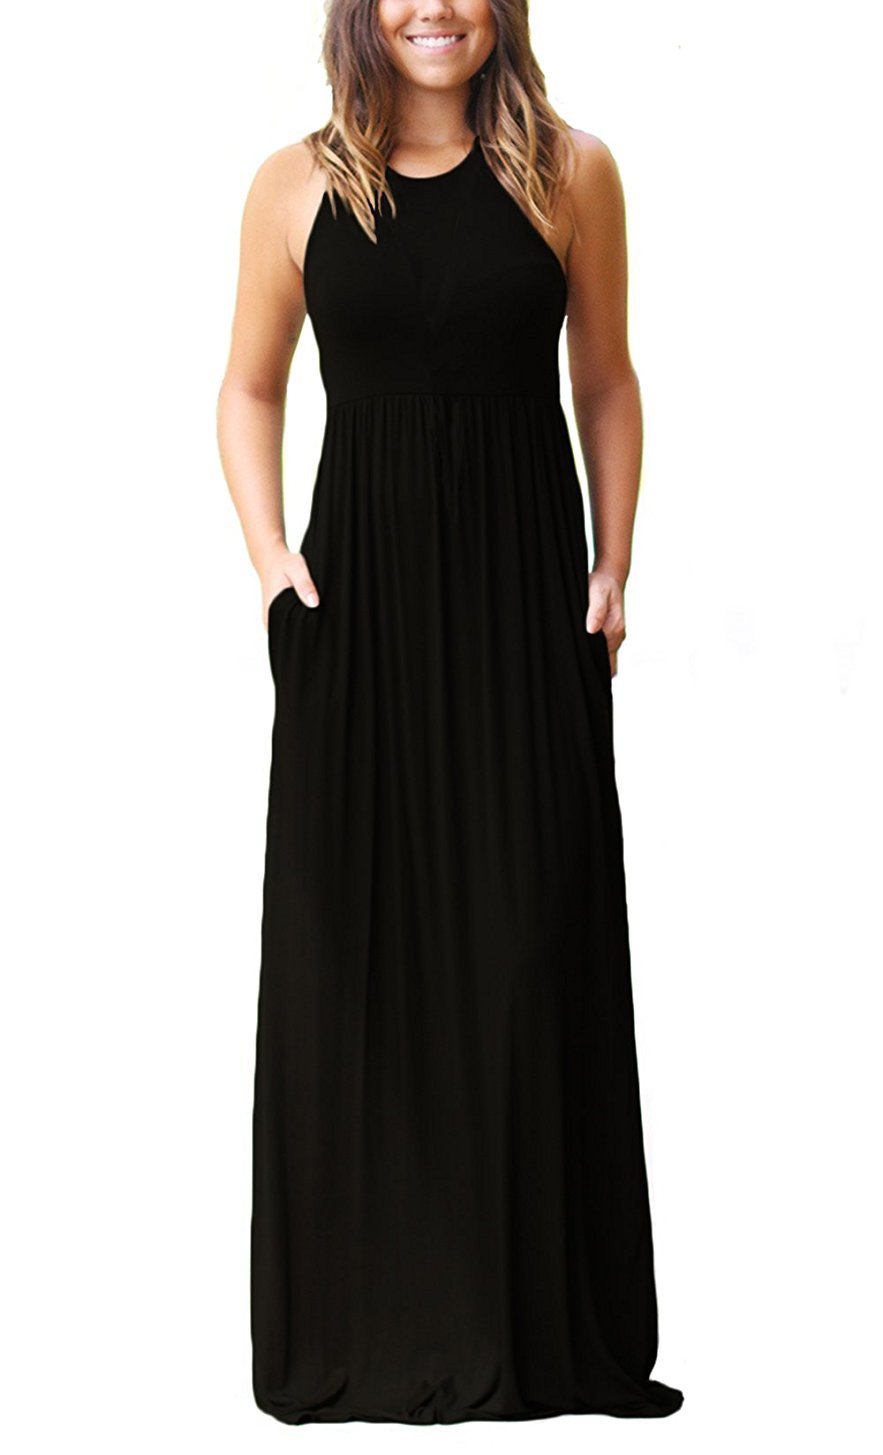 GRECERELLE Women's Round Neck Sleeveless A-line Casual Maxi Dresses with Pockets Black-L